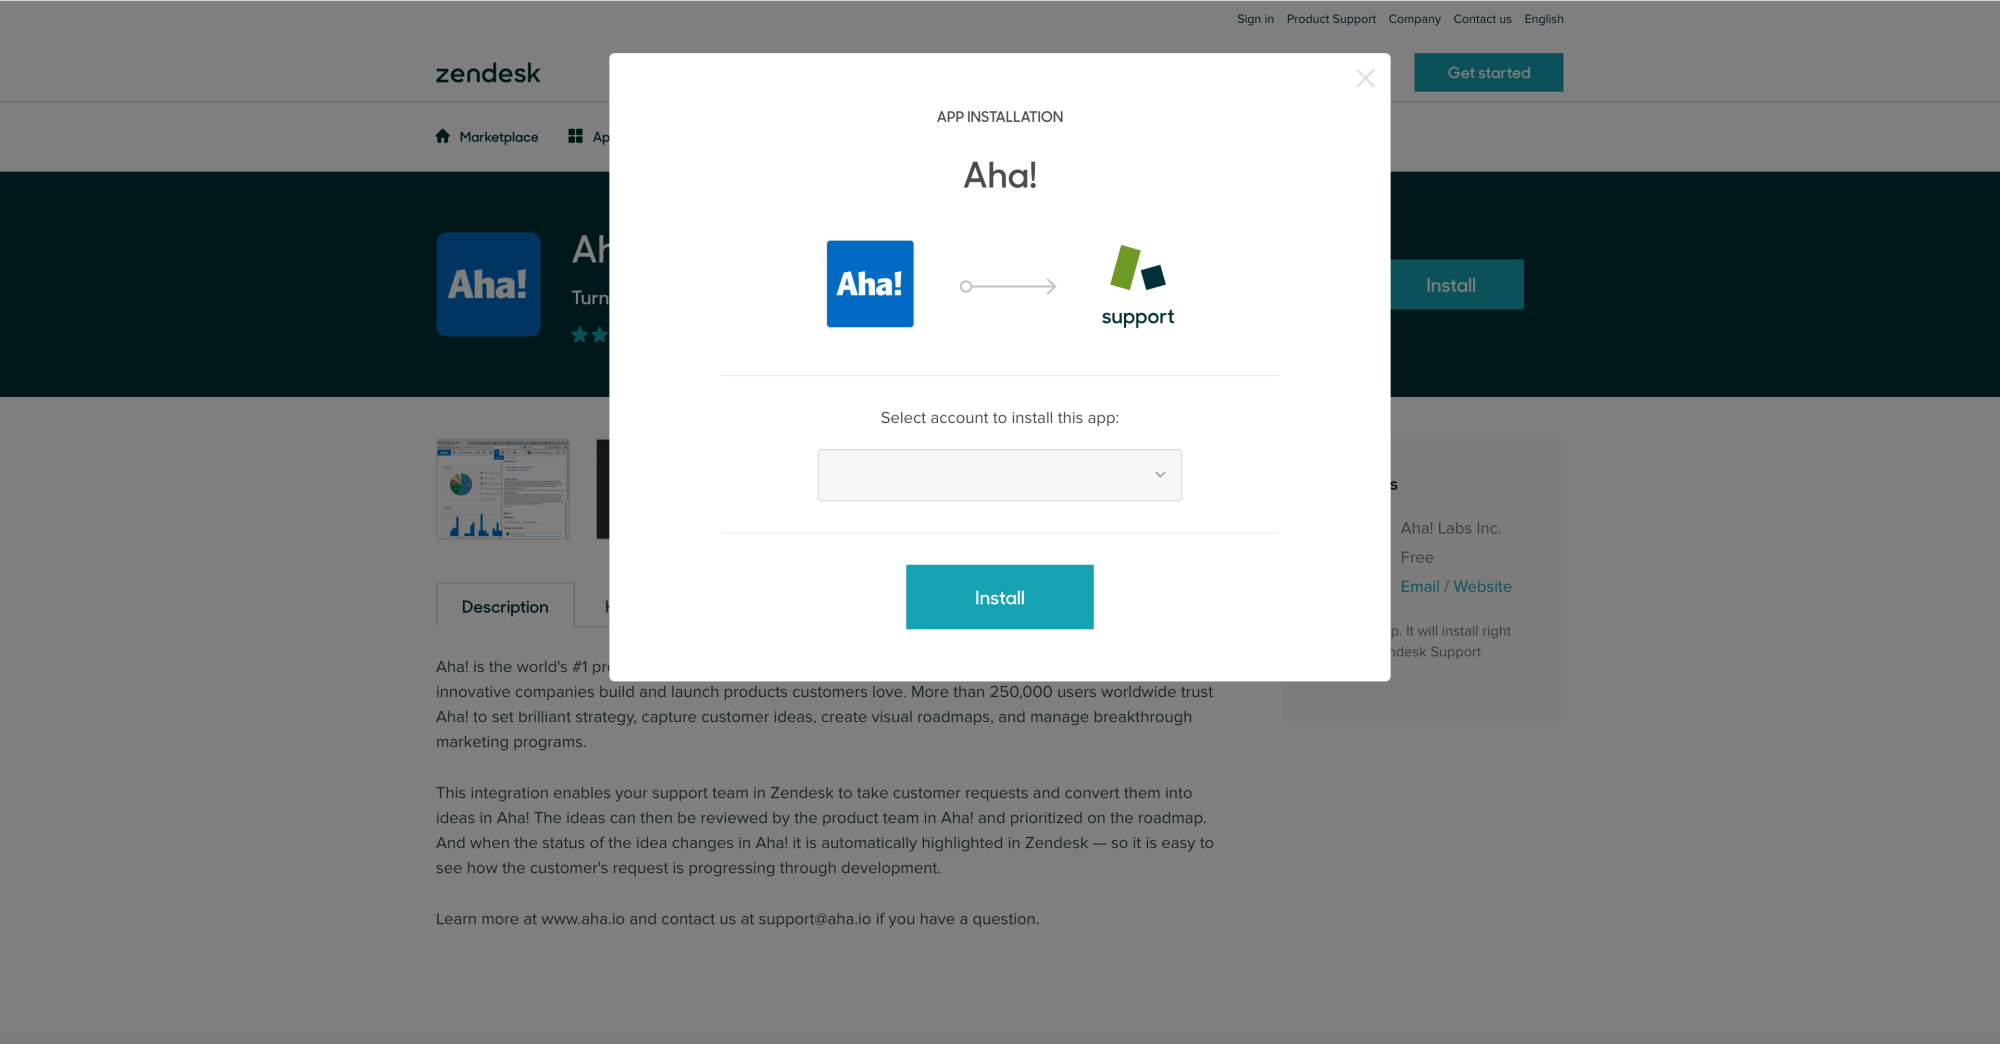 Install the Aha! app in Zendesk.